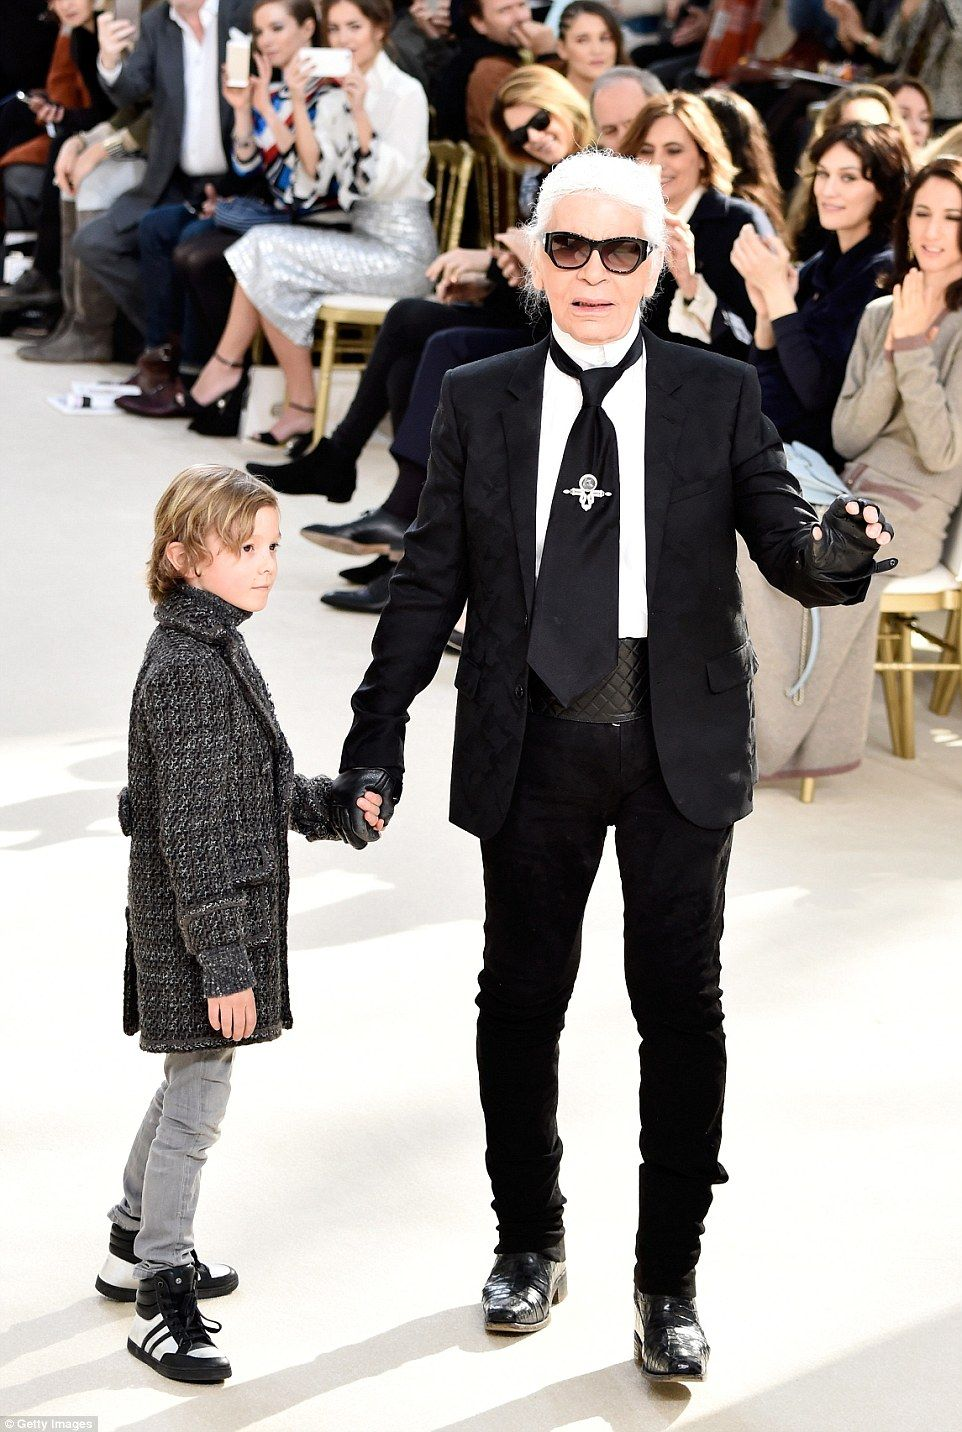 Nearest and dearest: After sending his favourite models down the runway, Karl Lagerfeld ap...